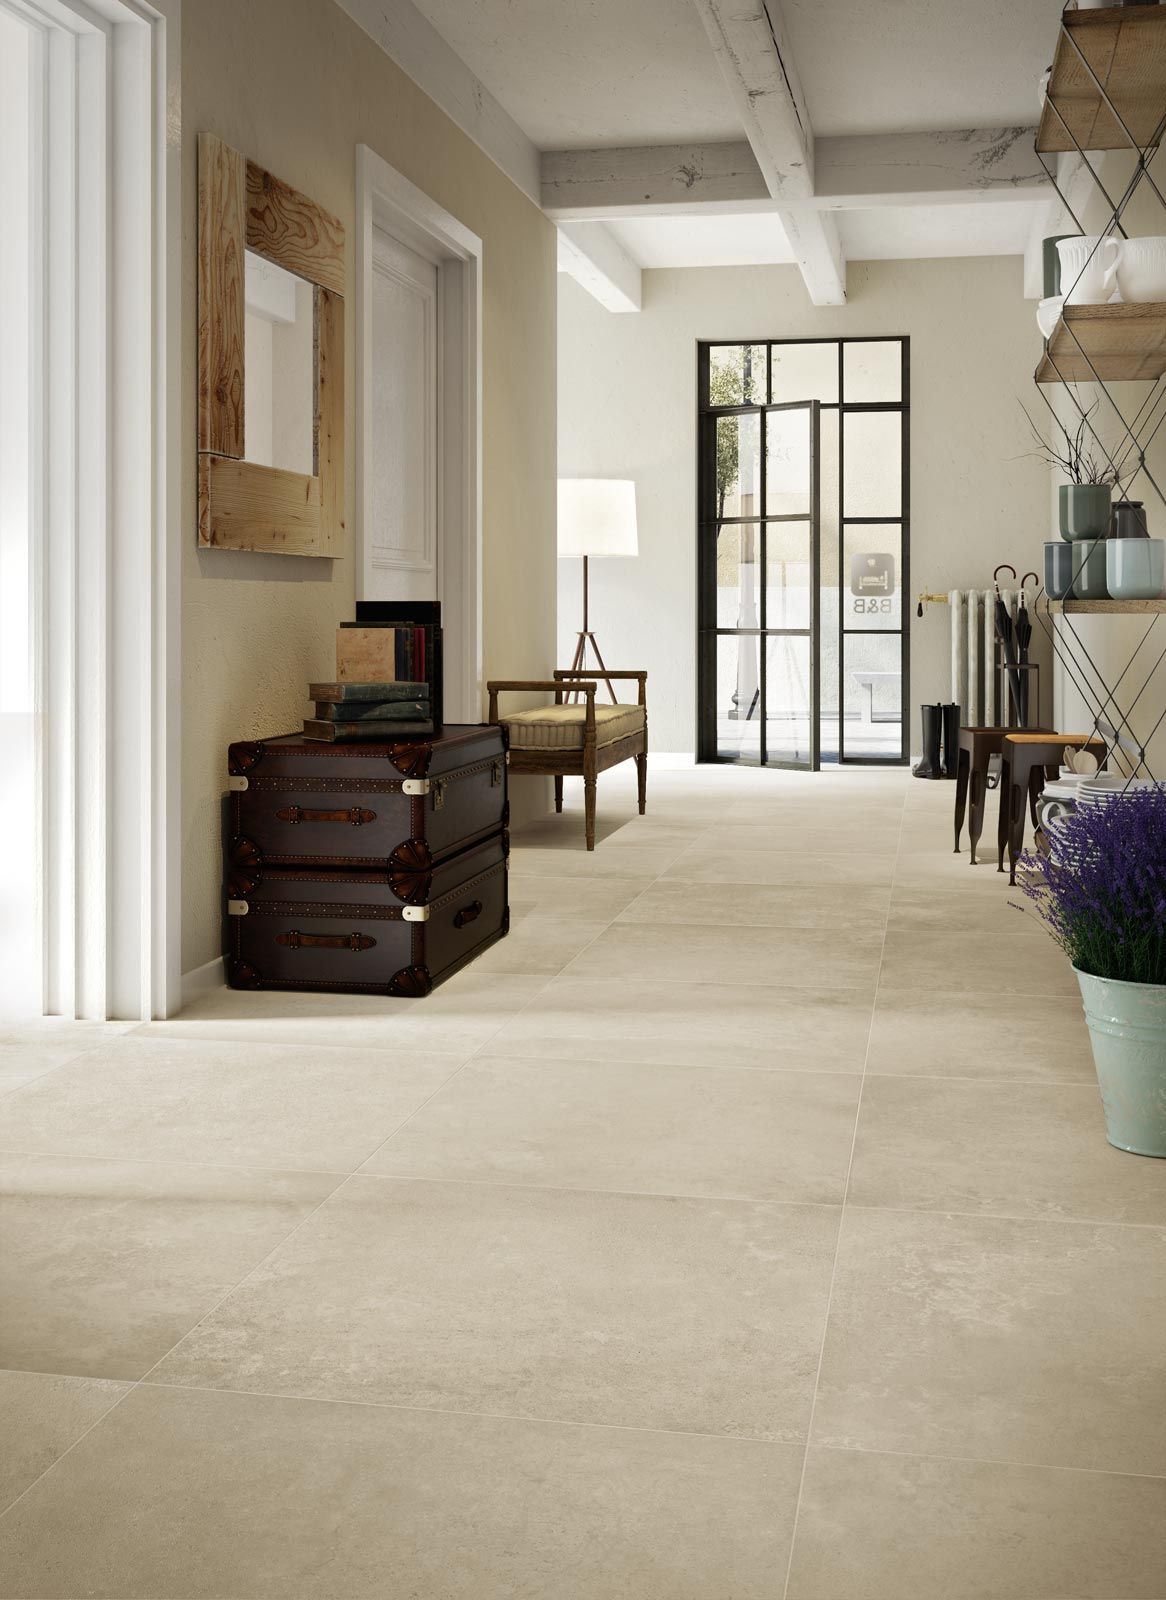 Trace is inspired by the timeless beauty of Mediterranean